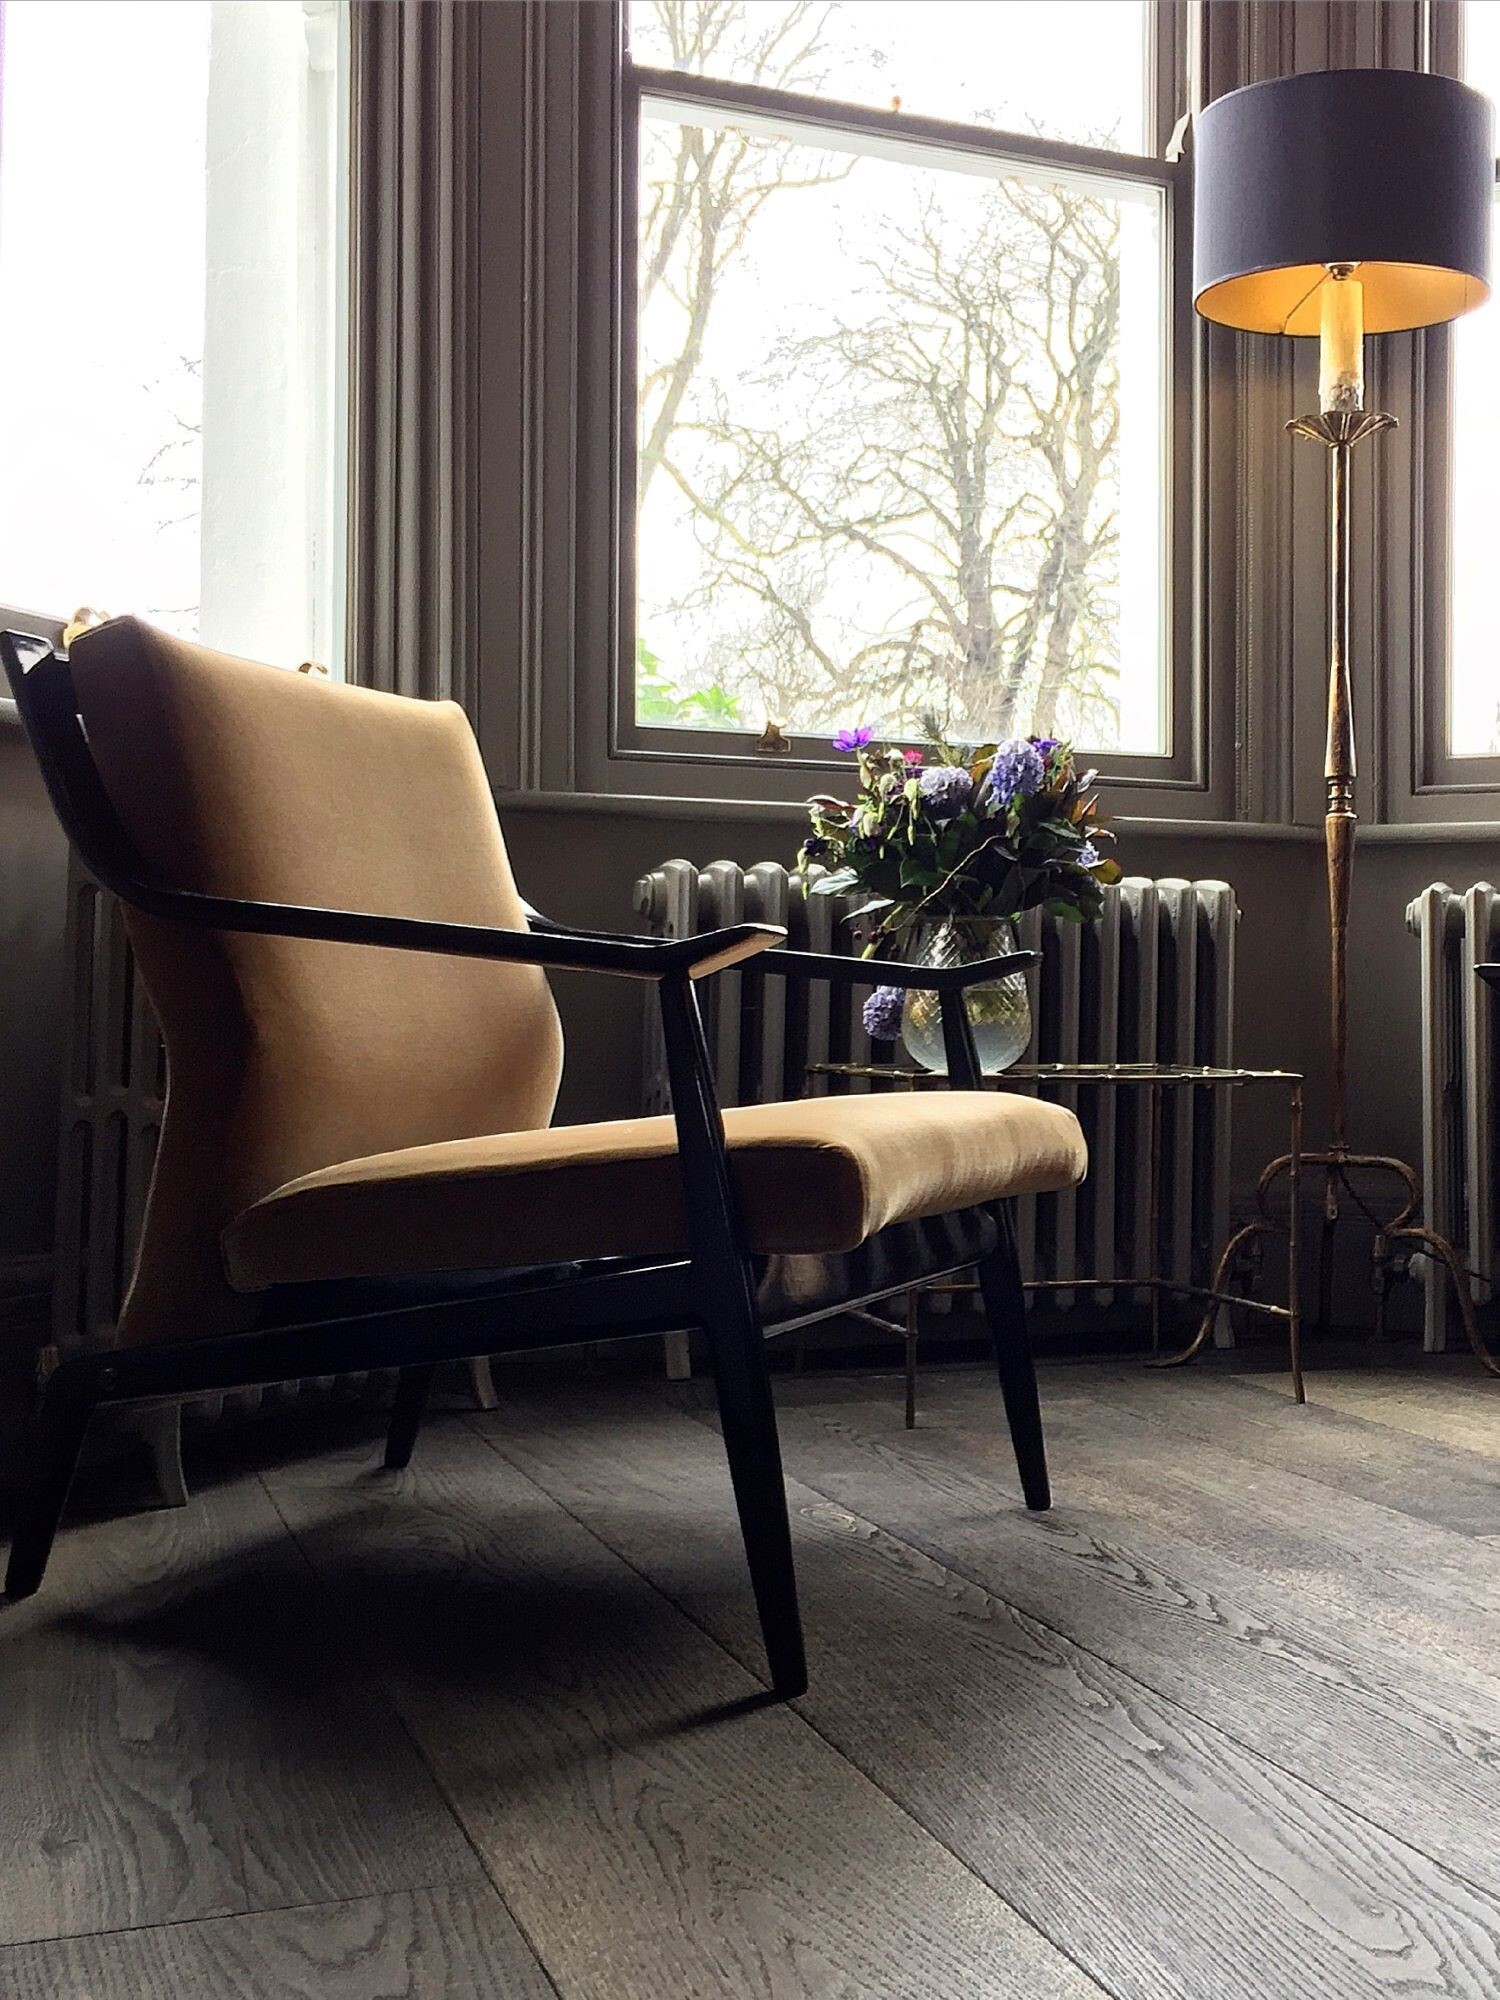 Magma mayon oak floor in baywindow with chair and black lamp